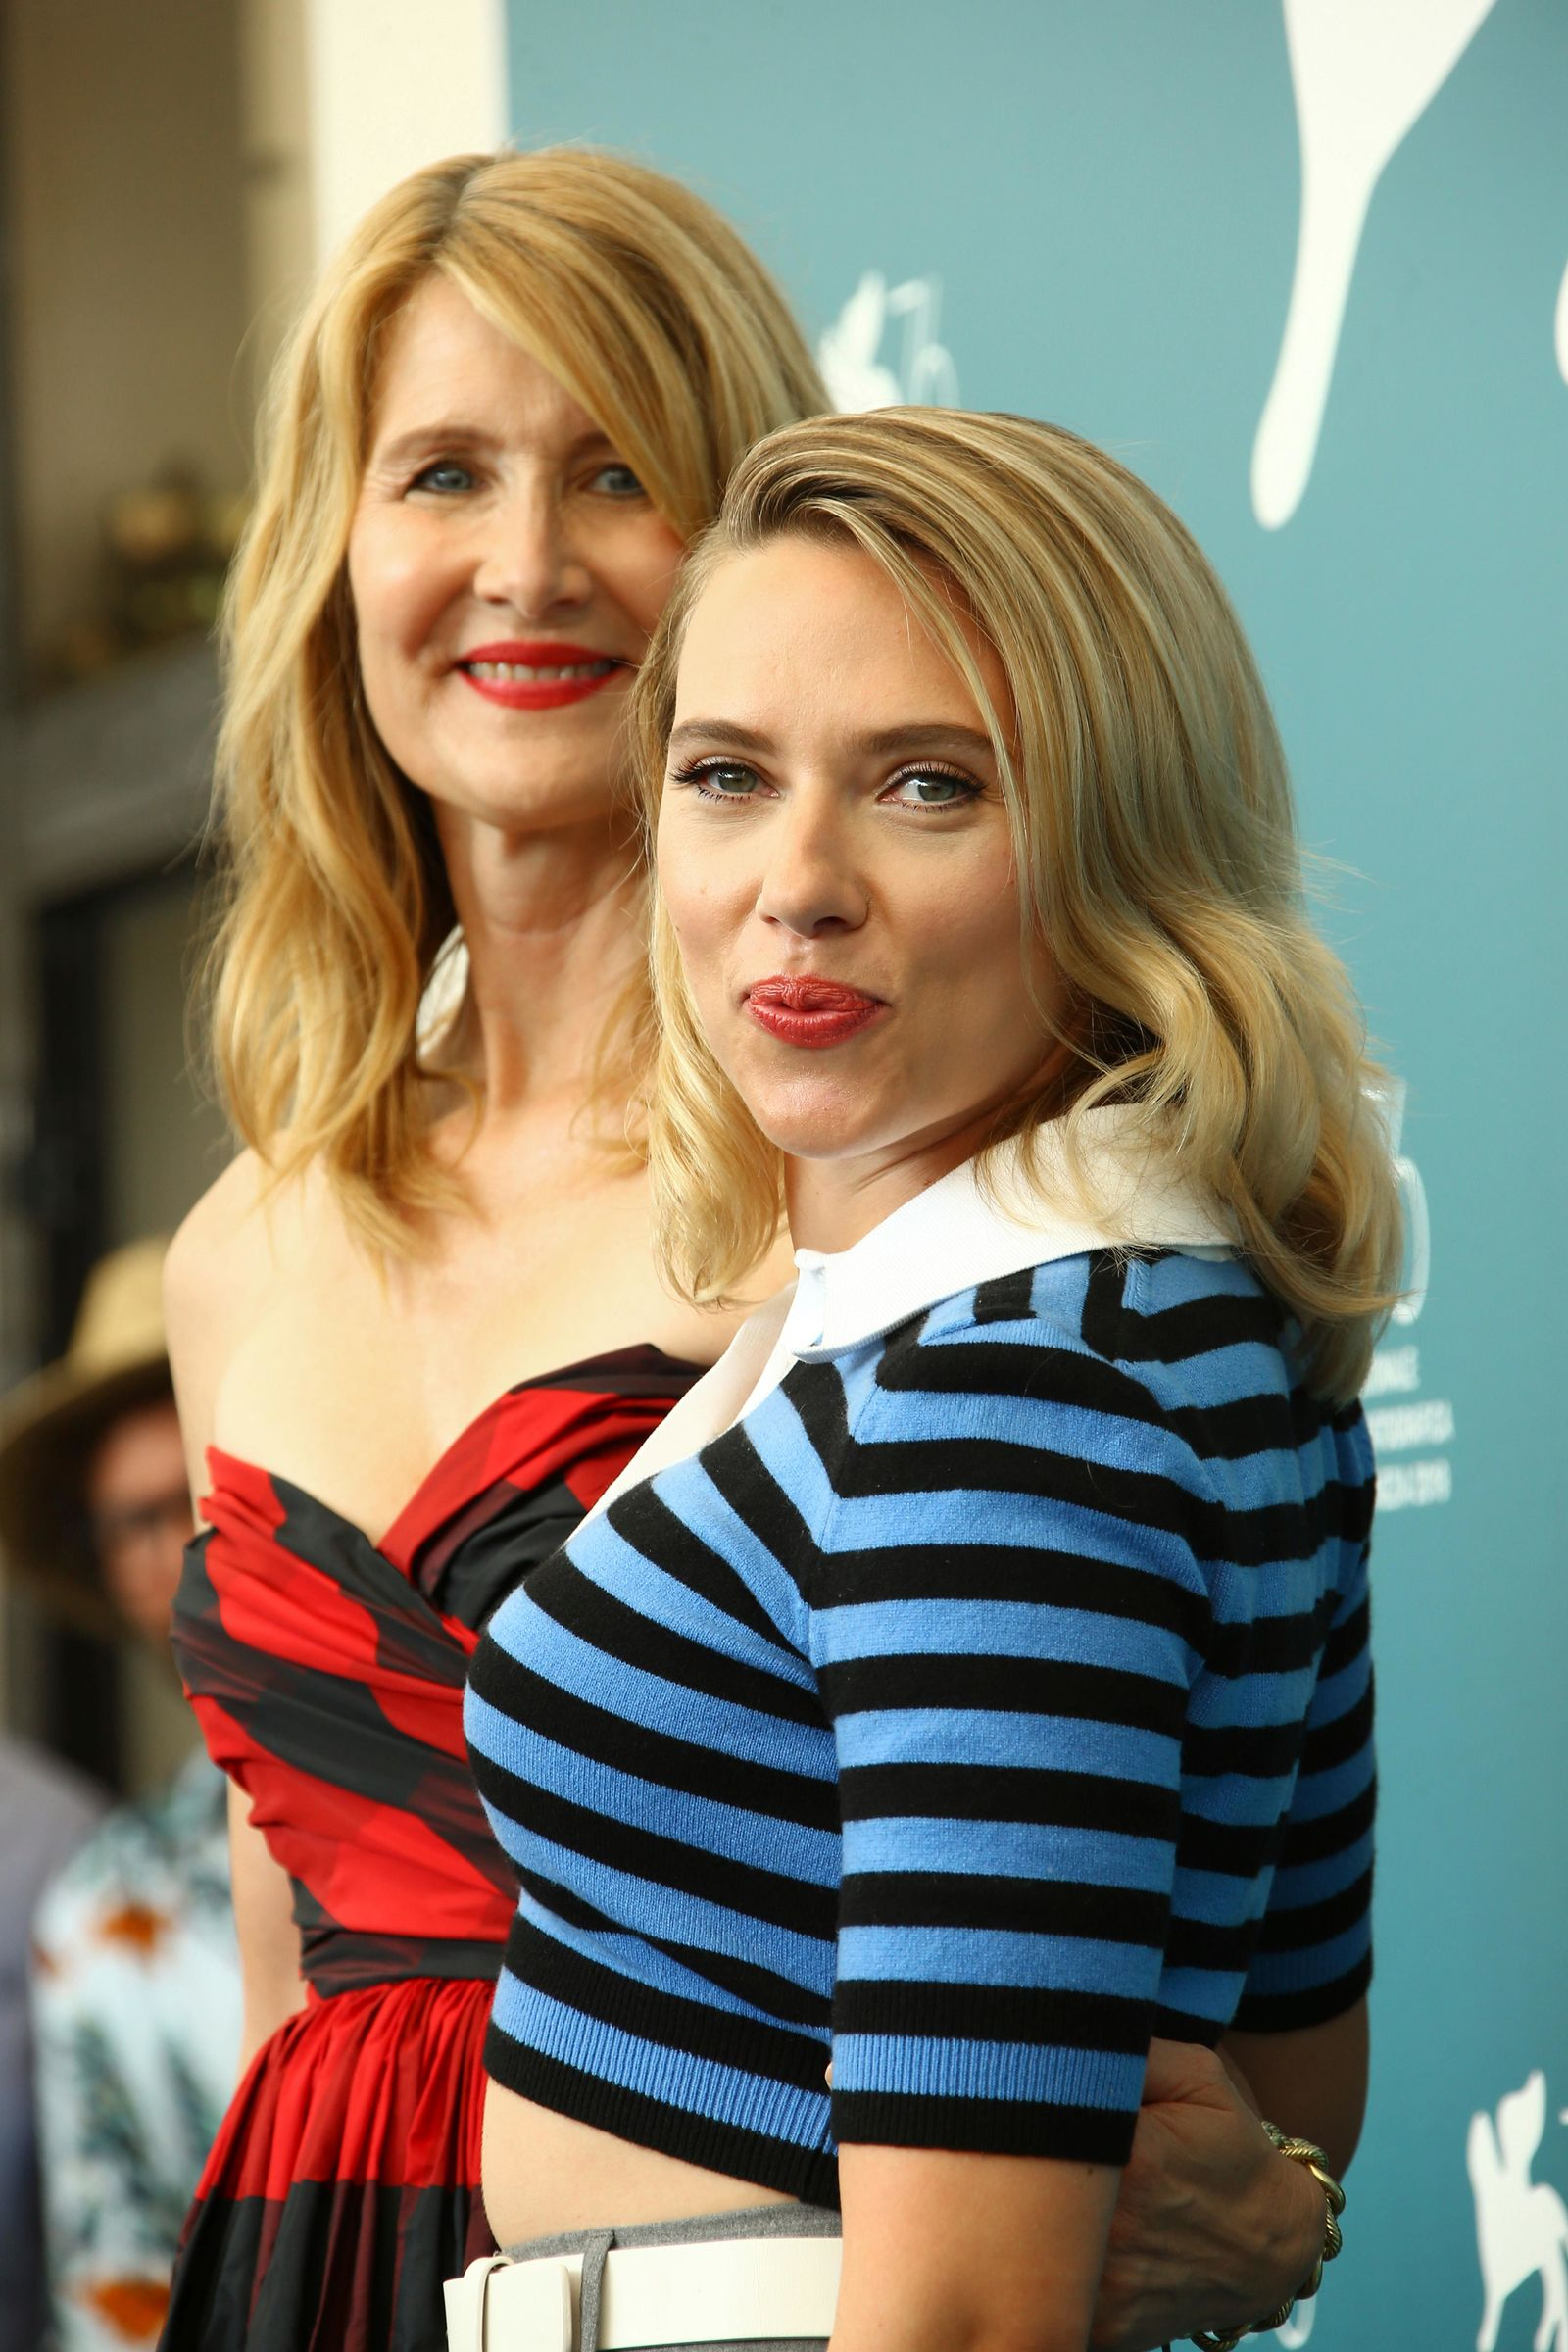 Actresses Laura Dern, back, and Scarlett Johansson pose for photographers at the photo call of the film 'Marriage Story' at the 76th edition of the Venice Film Festival in Venice, Italy, Thursday, Aug. 29, 2019. (Photo by Joel C Ryan/Invision/AP)